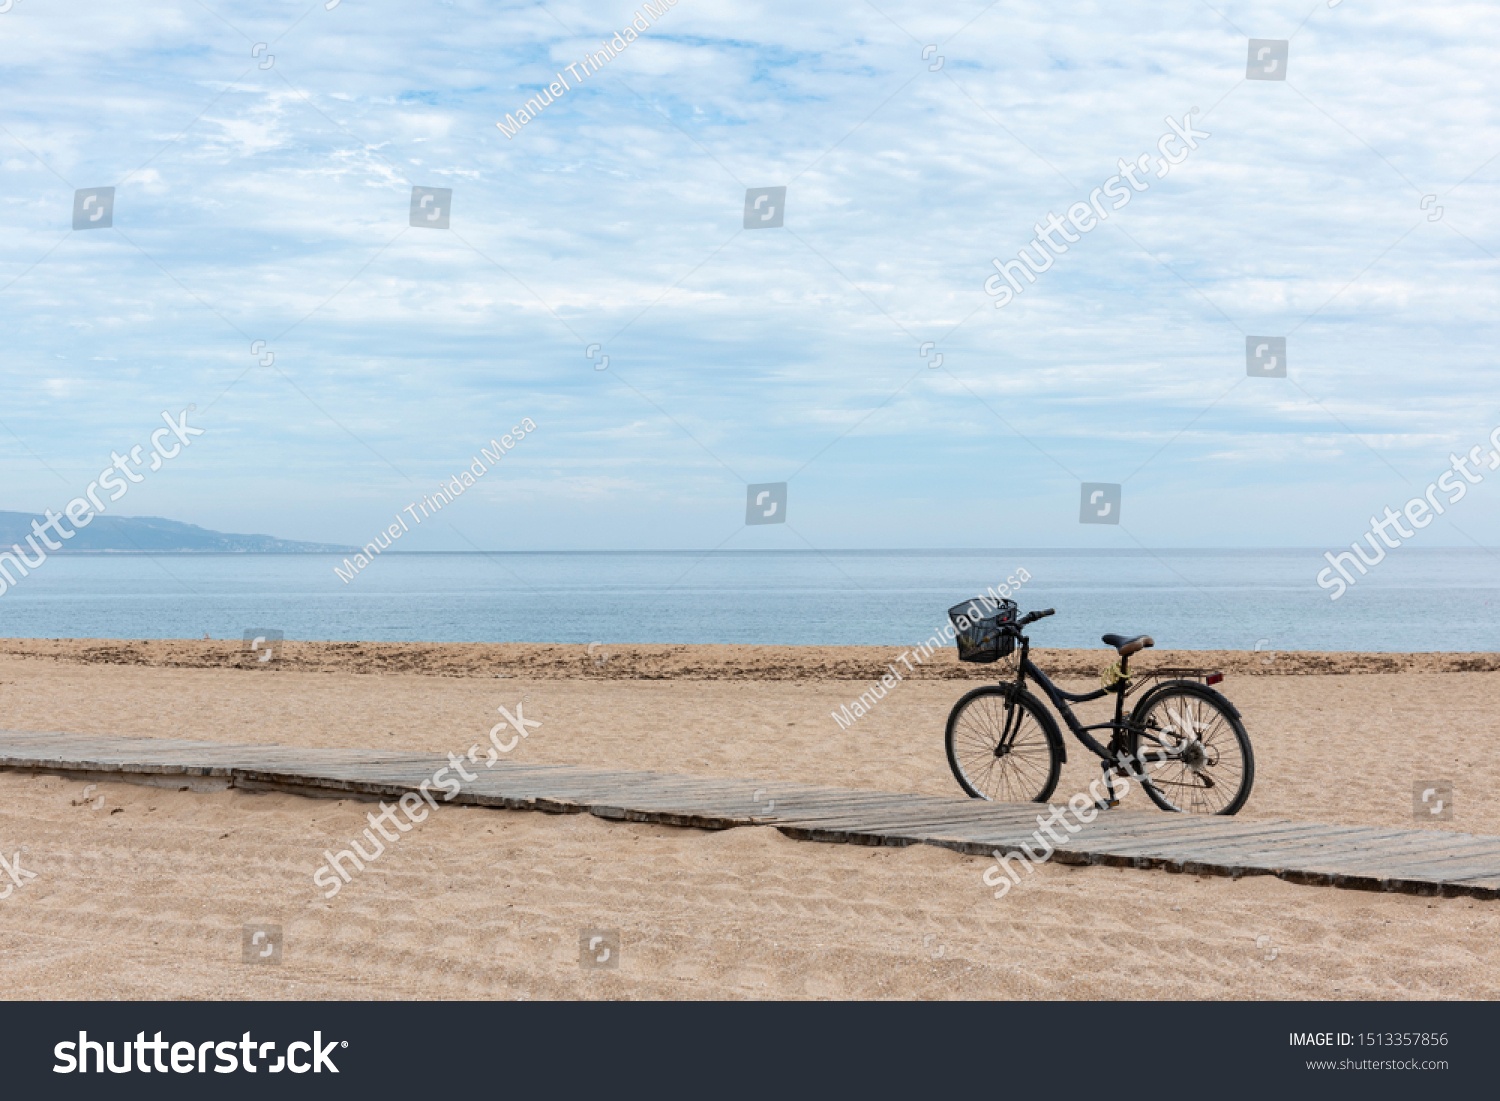 A bicycle on the sand of the beach